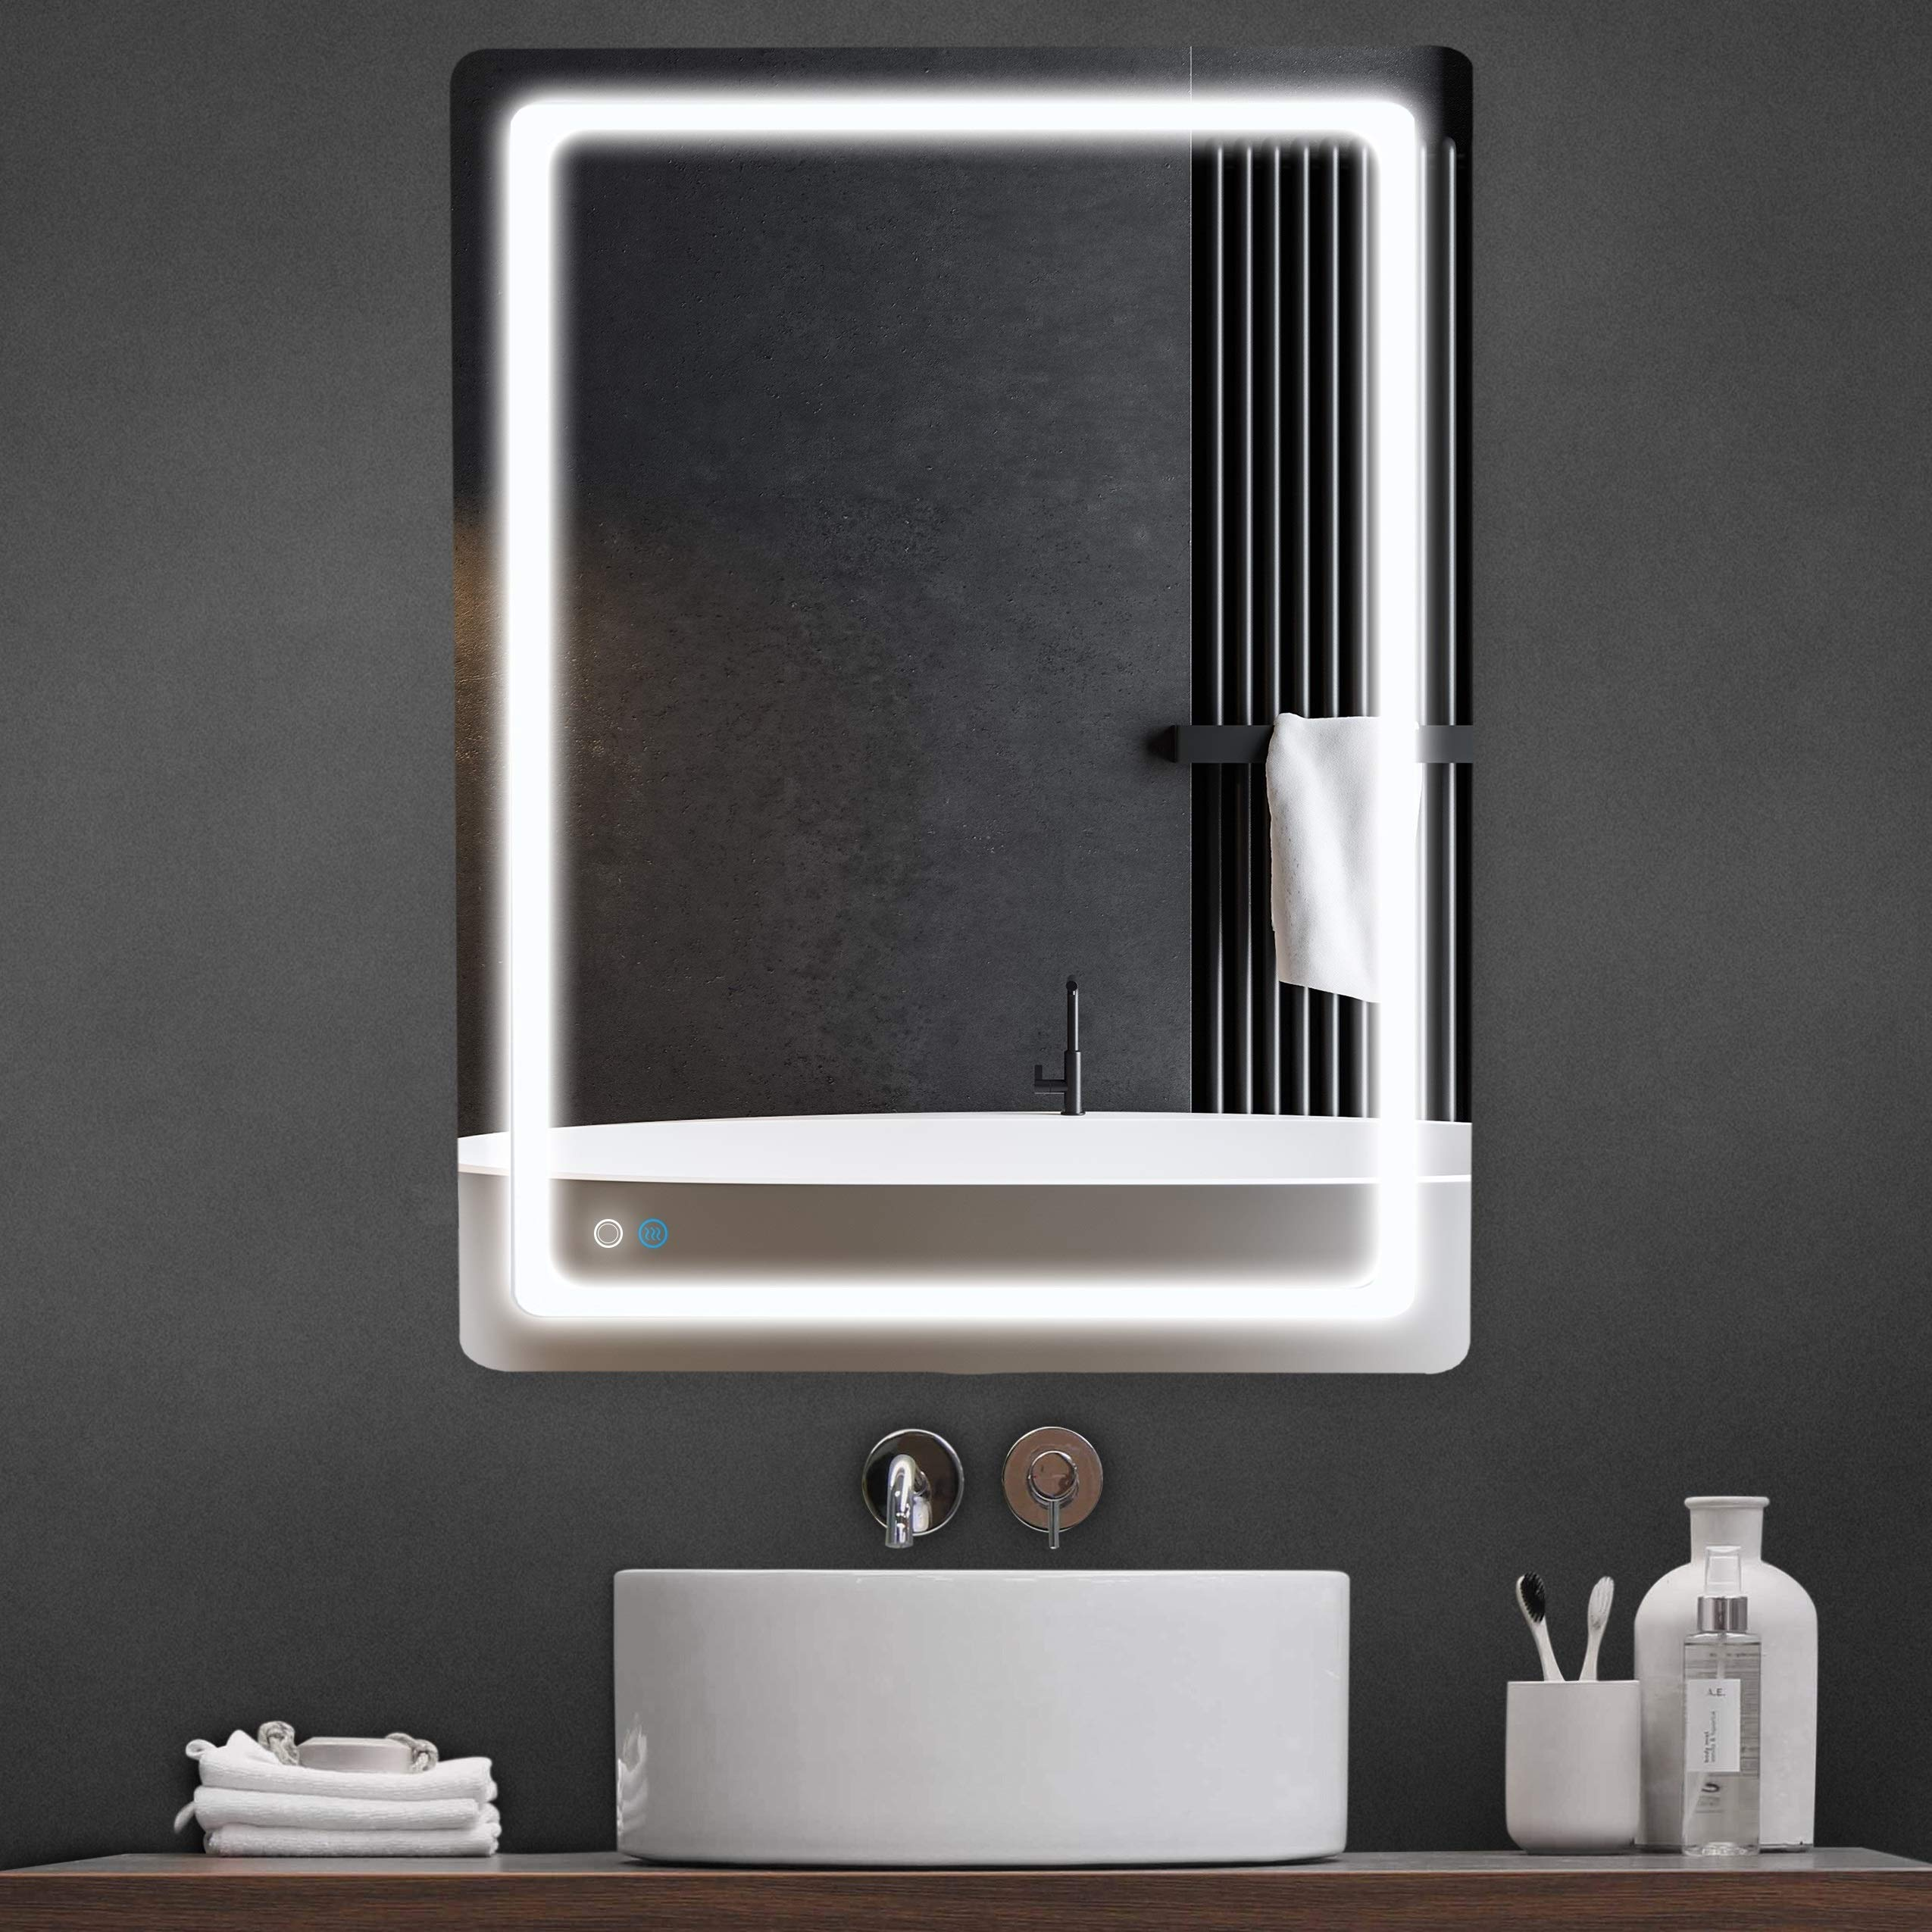 LyteSho LED Bathroom Mirror for Wall - 36x28 inch Anti Fog Bathroom Mirror for Vanity - Lighted Bathroom Vanity Mirror with 3 Light Settings - Makeup Mirror with Lights Fog Free Frameless Smart Mirror